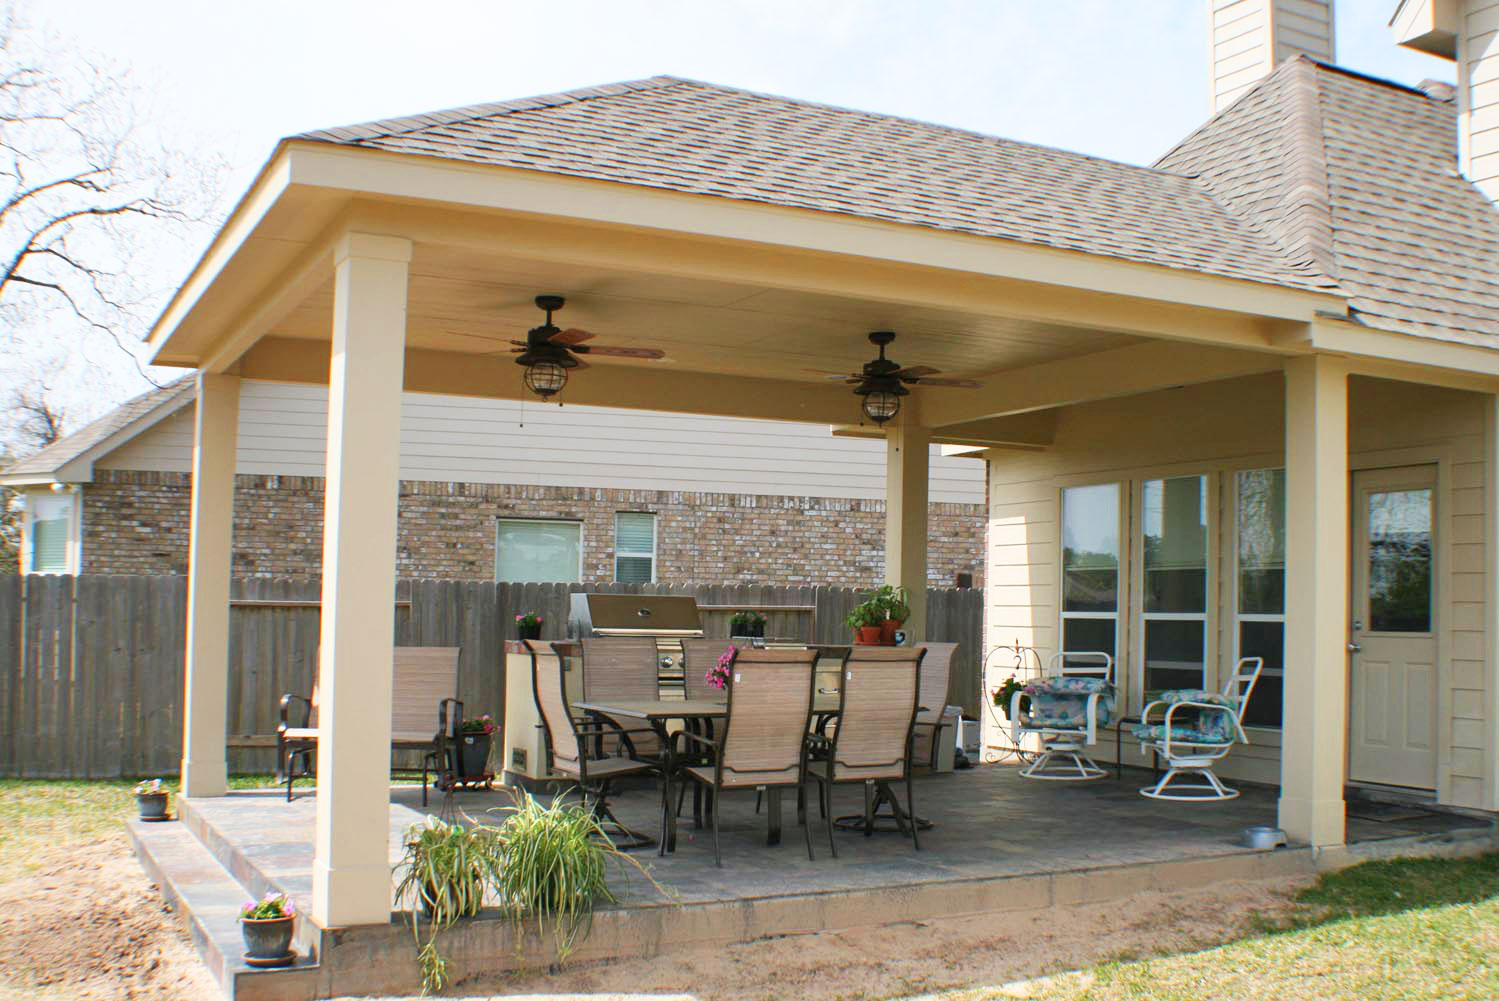 16 by 20 Patio Cover + Outdoor Kitchen - HHI Patio Covers on Backyard Patio Cover  id=11932